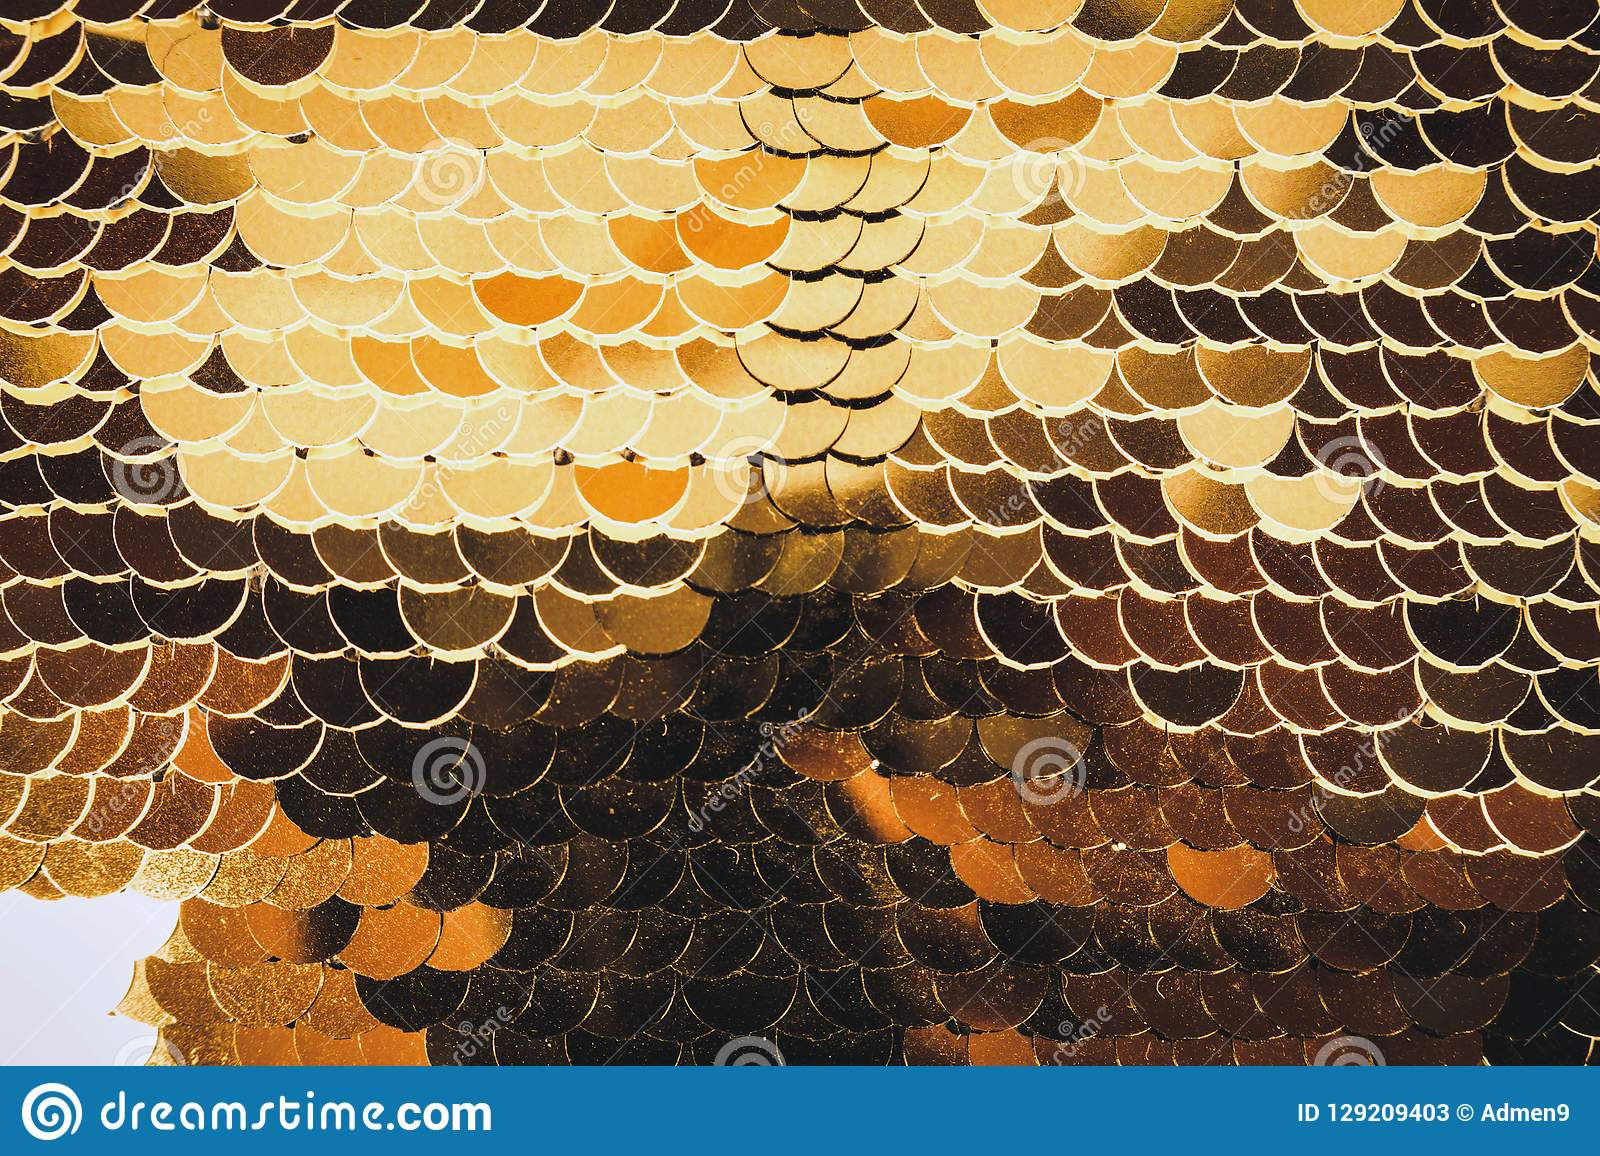 Fish scales golden shiny shimmers in different colors. Glamorous